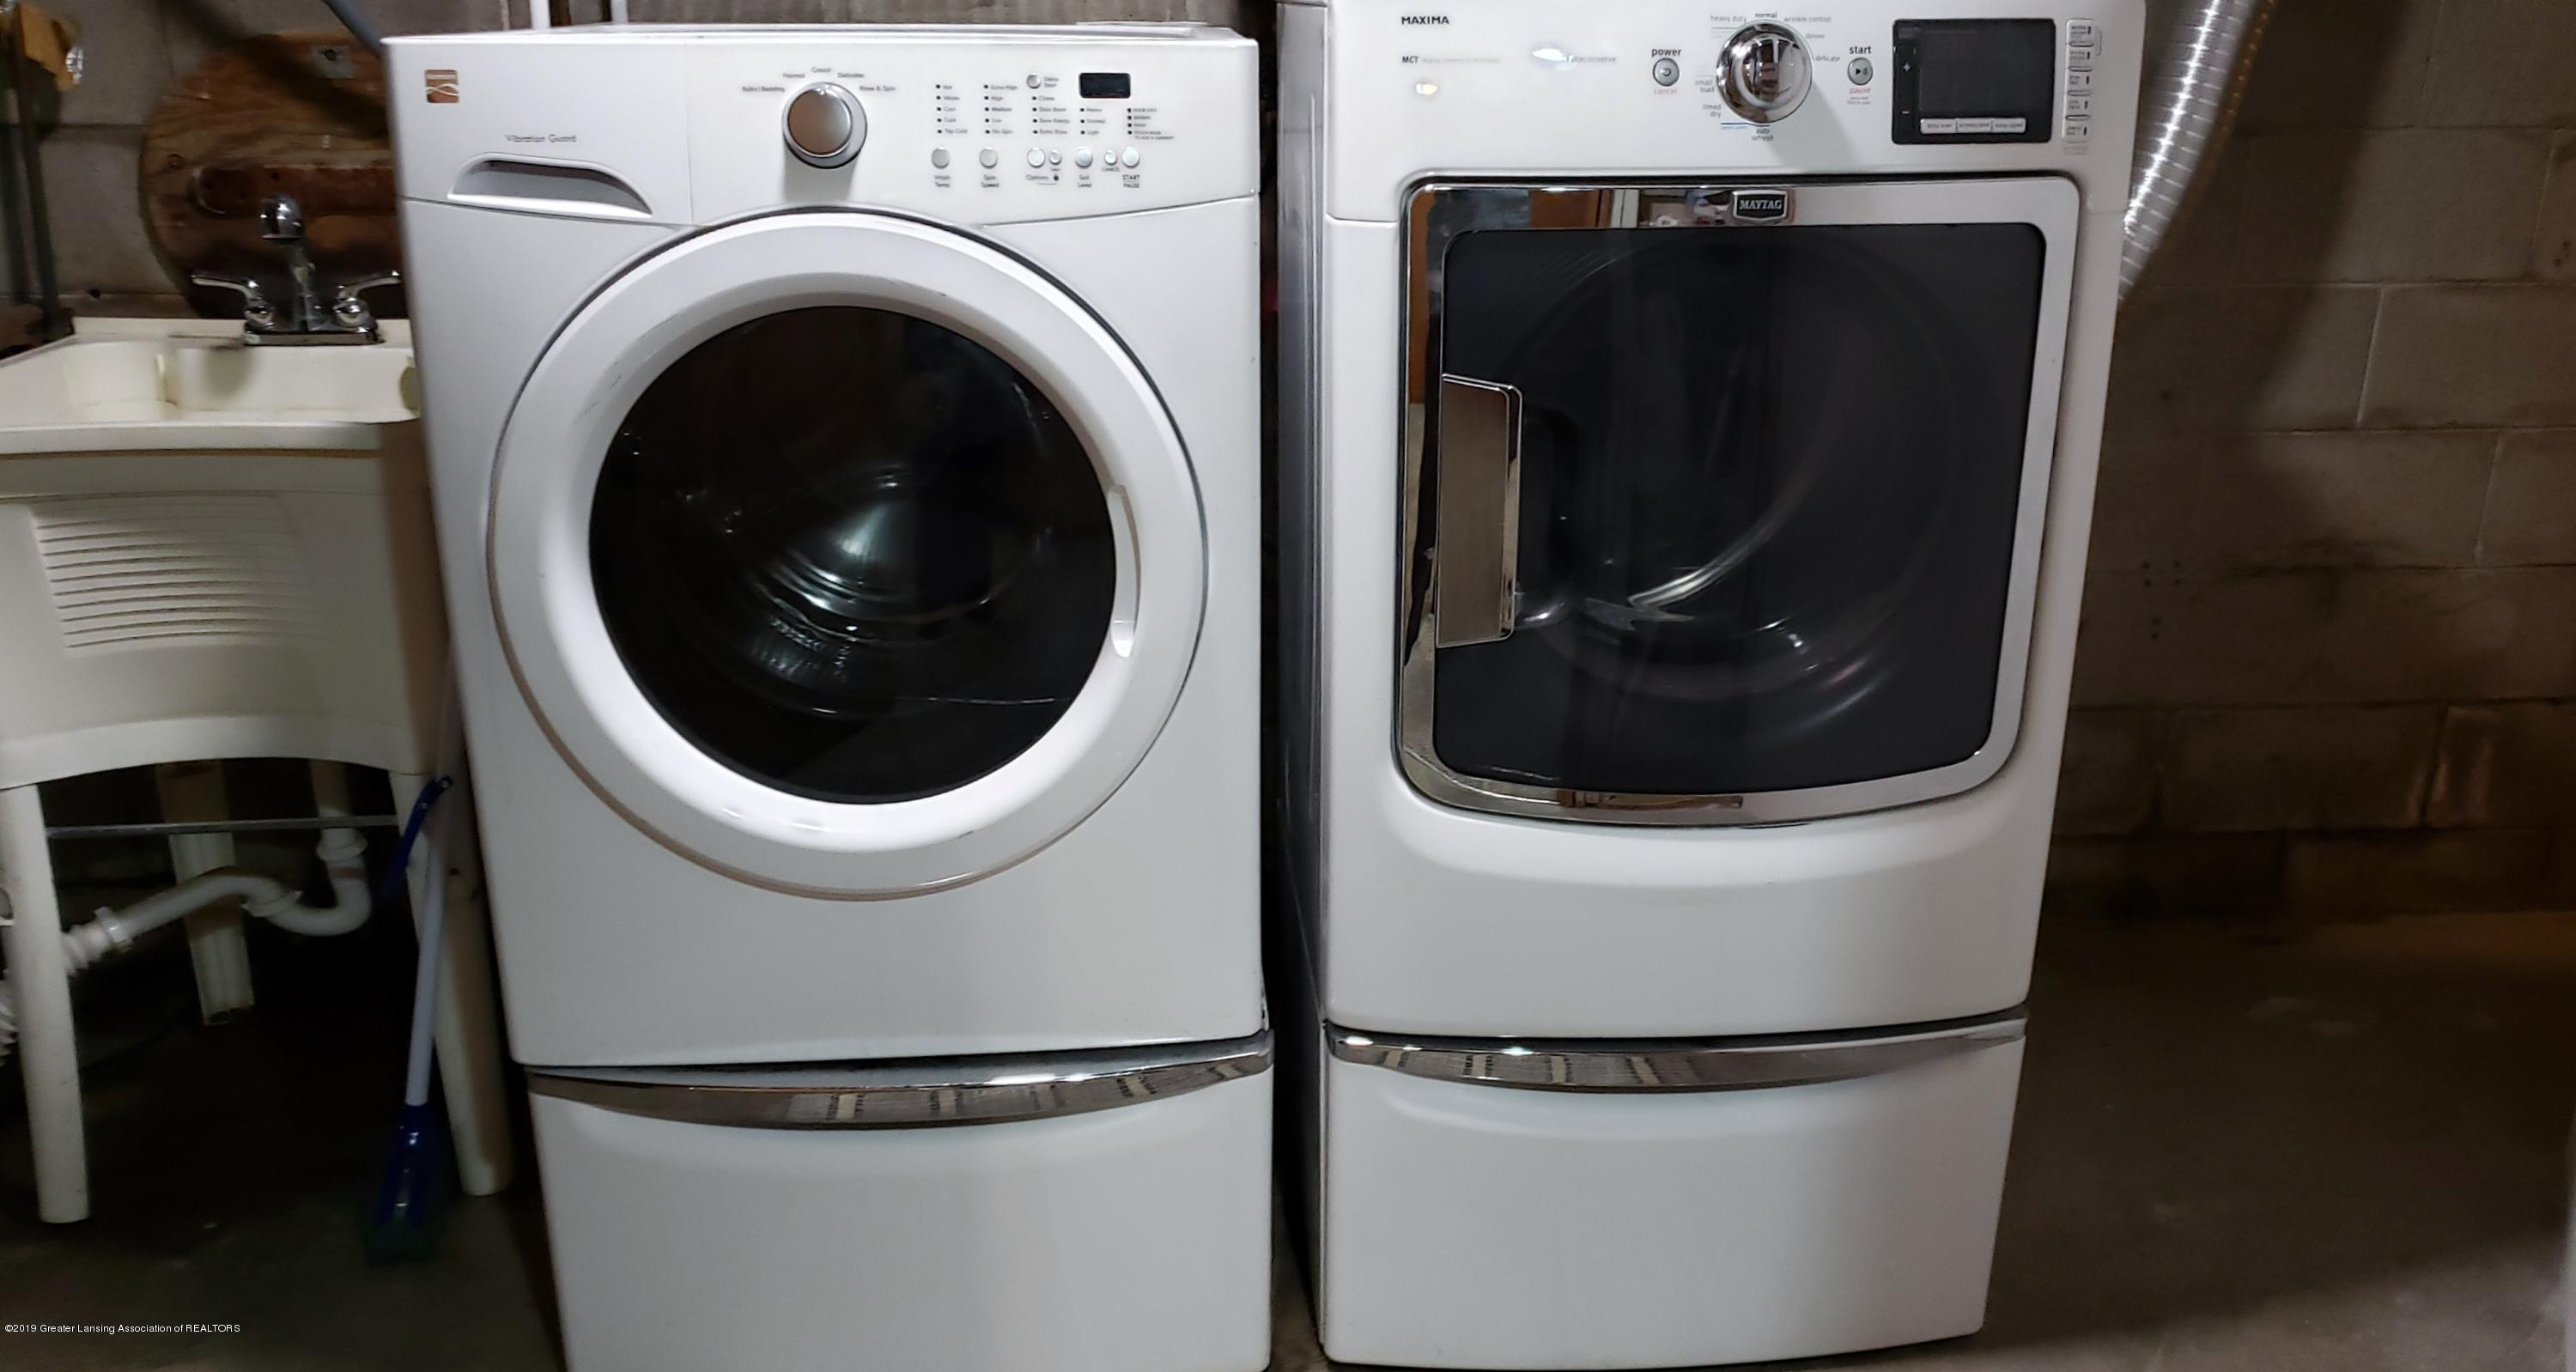 224 Woodhaven Dr - Washer Dryer - 26